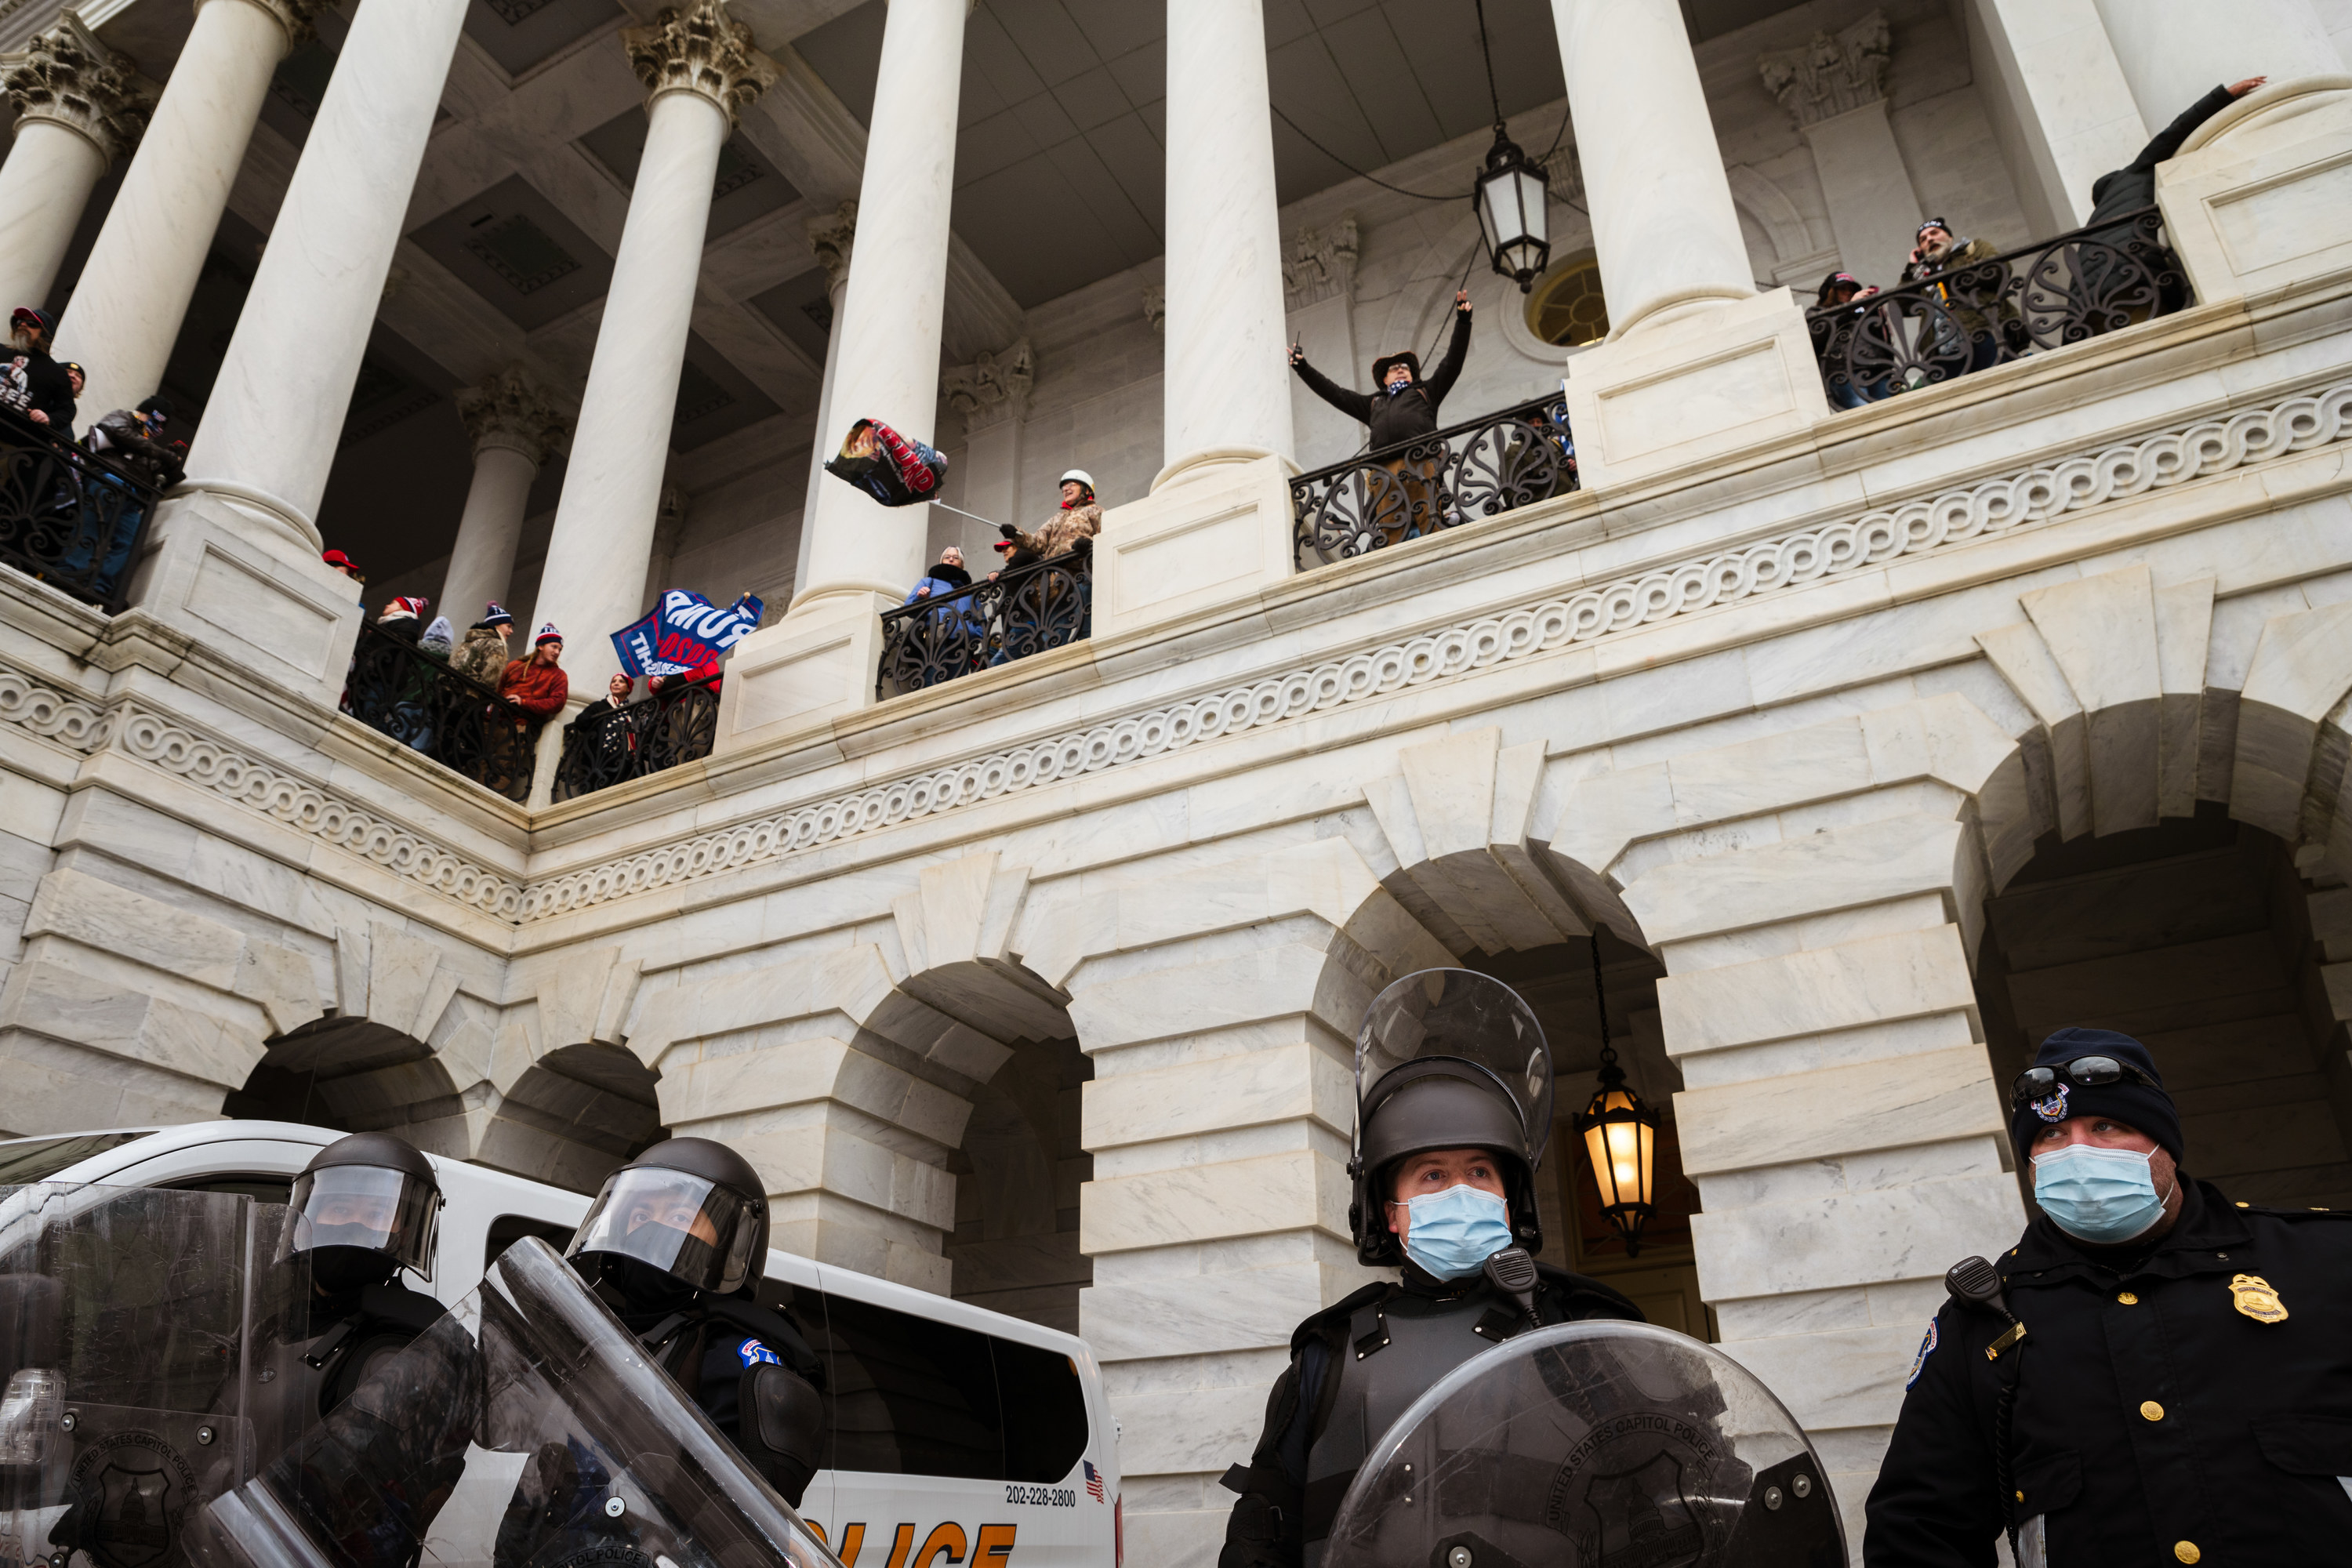 Trump supporters wave flags between columns at the Capitol building on a second floor; below them, police wear face masks, helmets, and shields